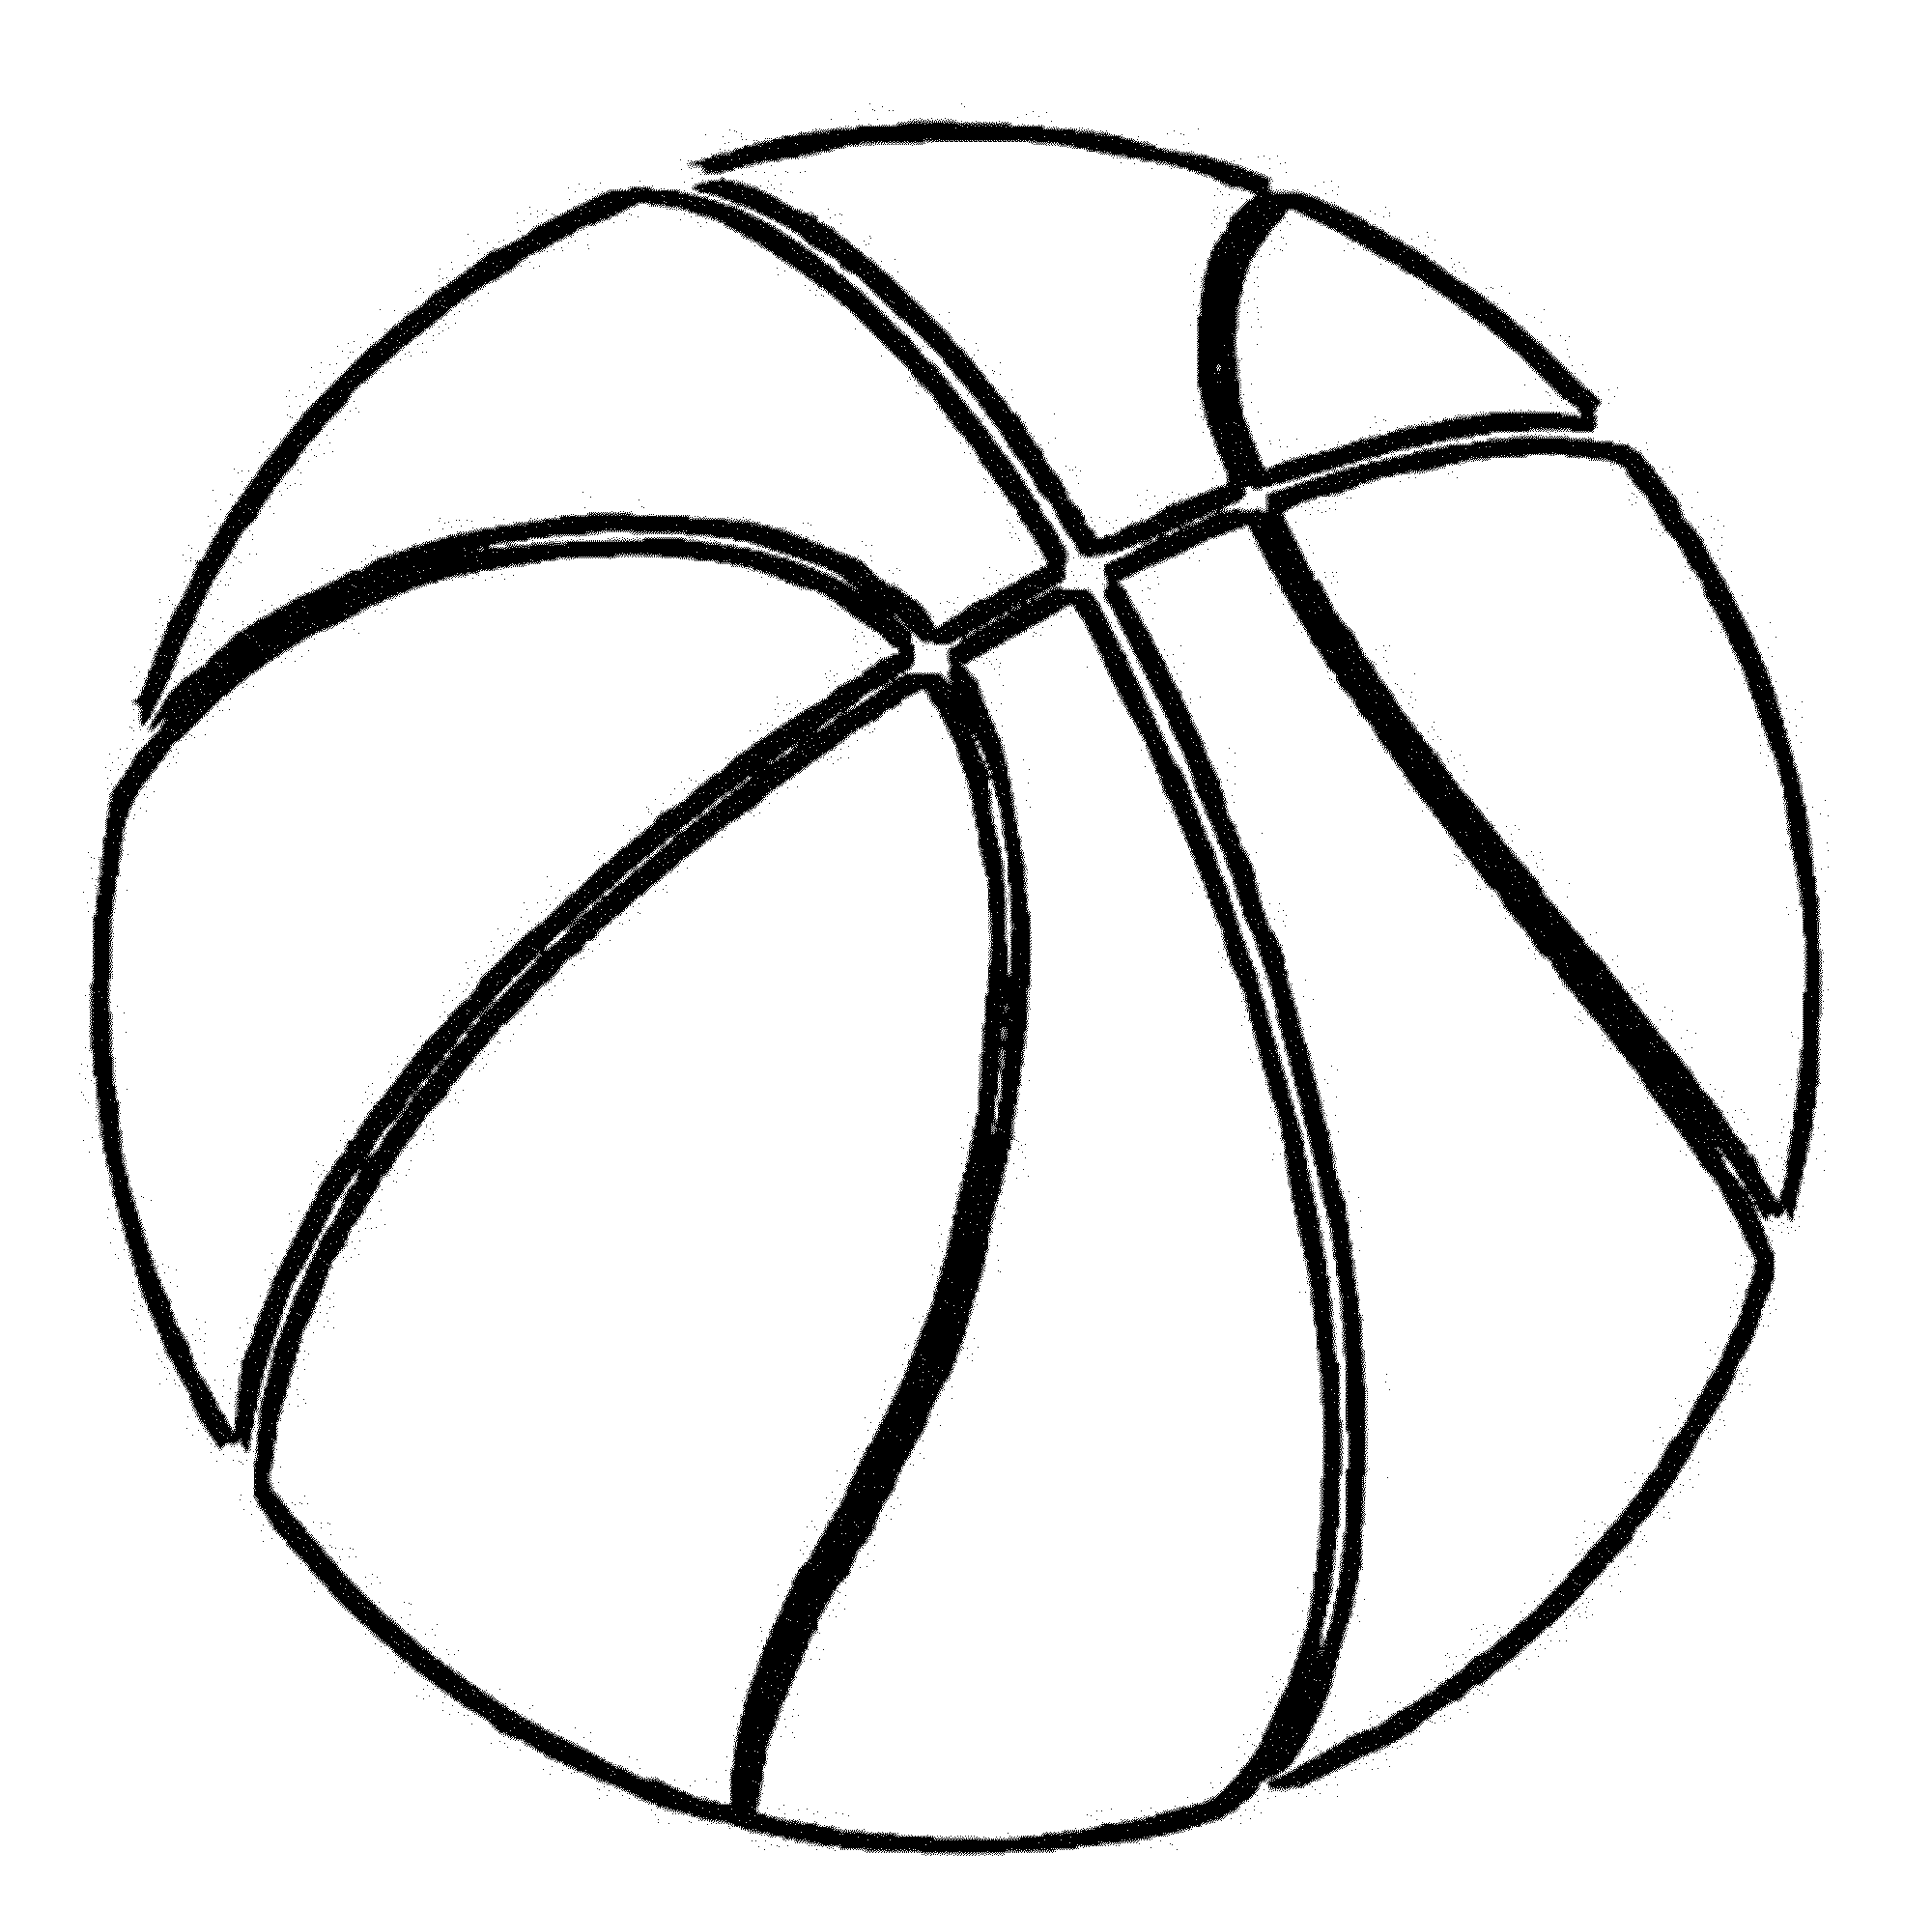 coloring pictures basketball basketball free to color for children basketball kids pictures coloring basketball